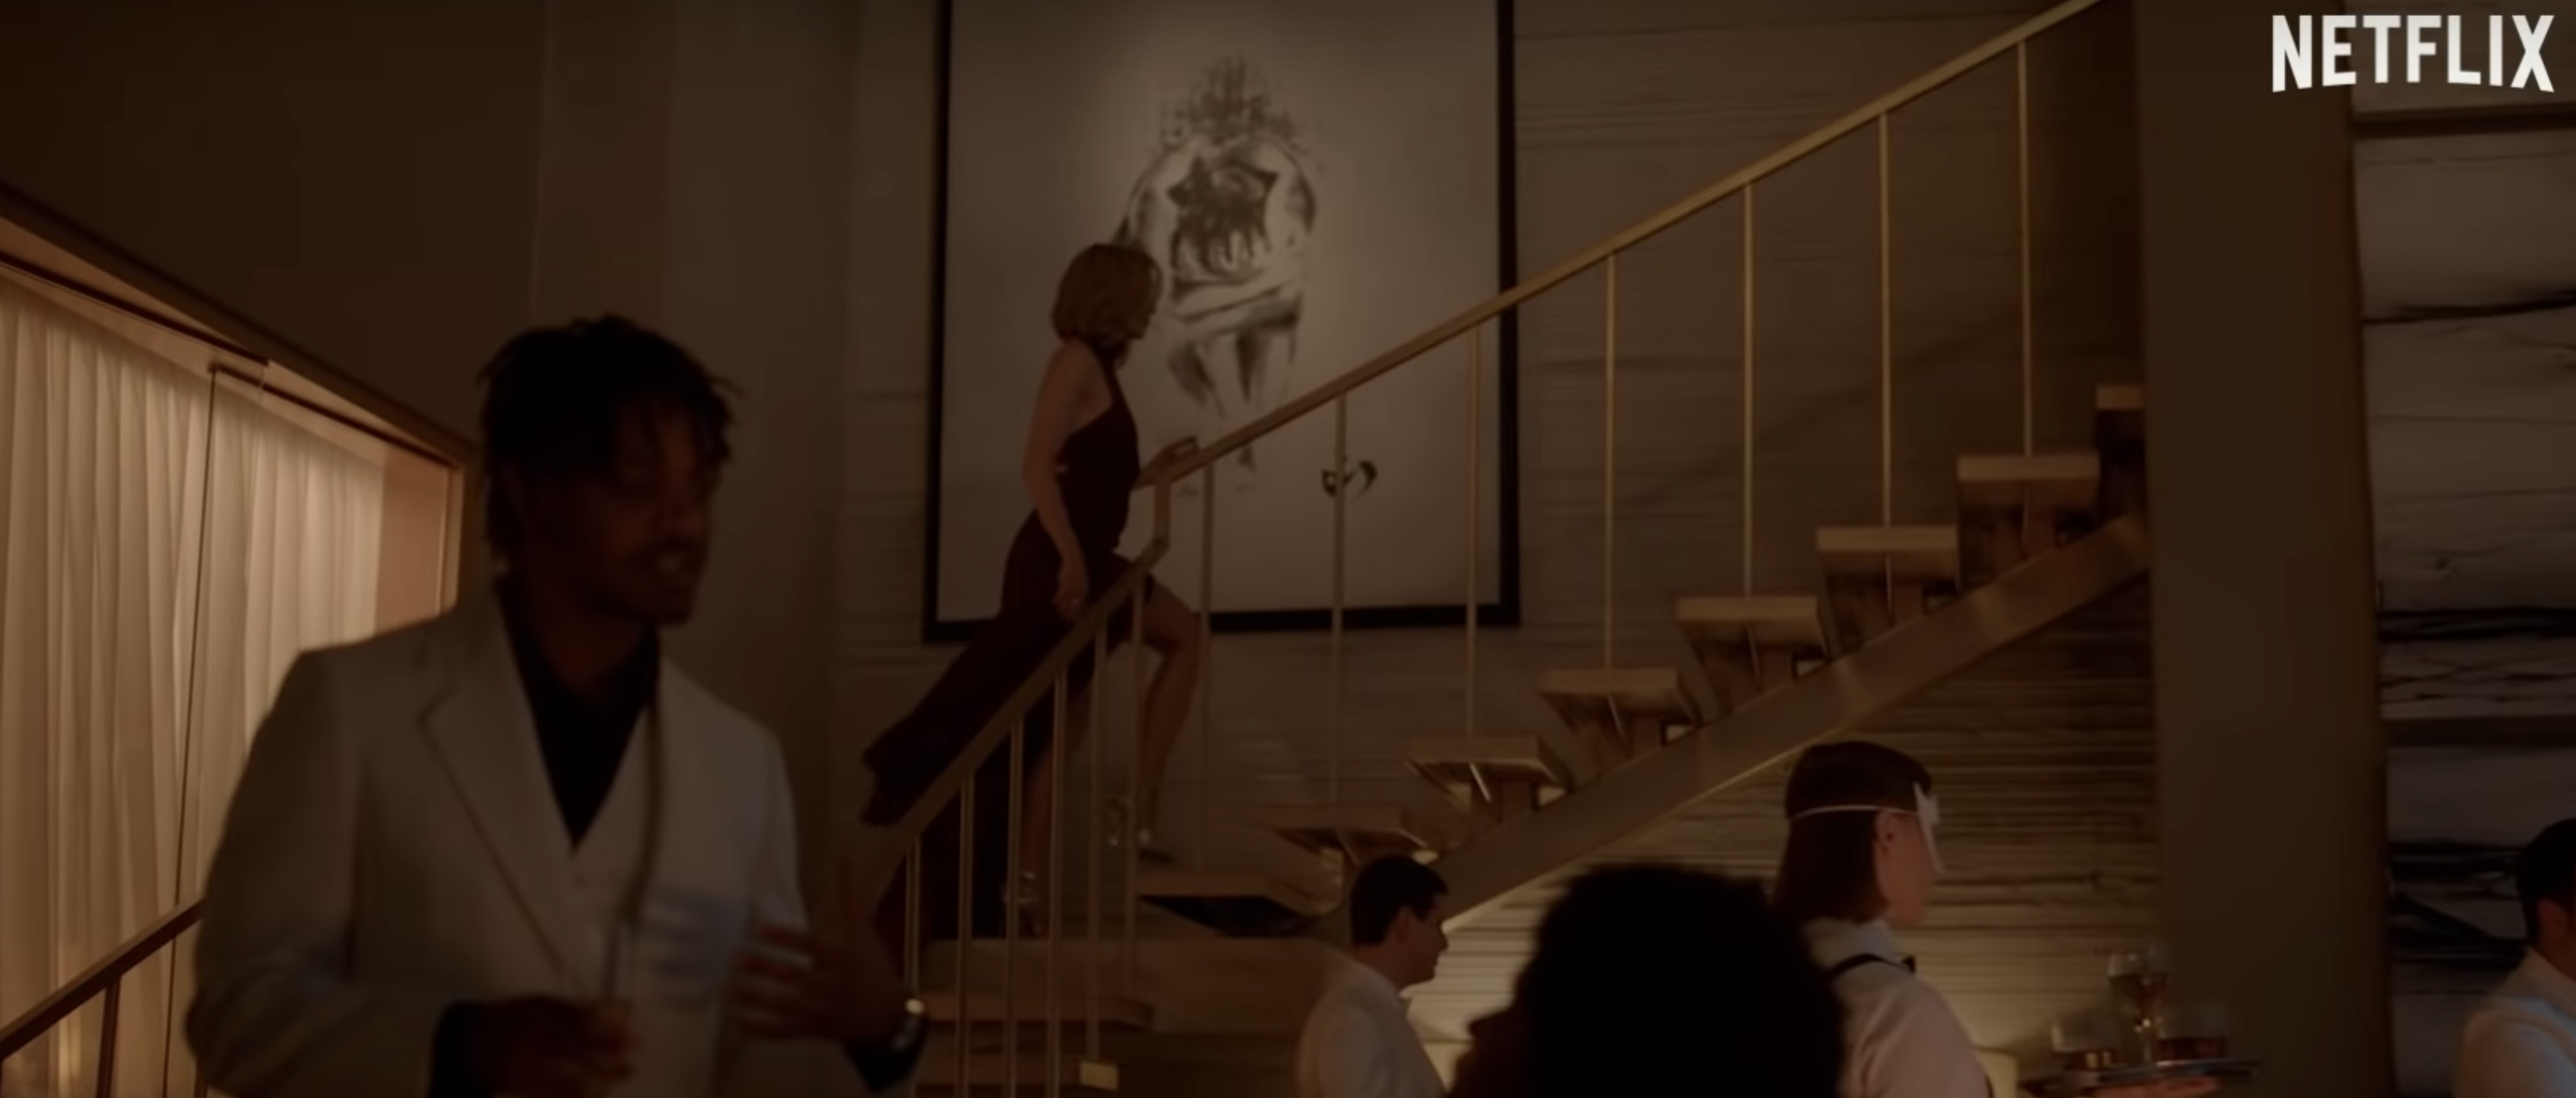 Renée Zellweger is latest big name to lead a Netflix series in seductive first trailer for What/If